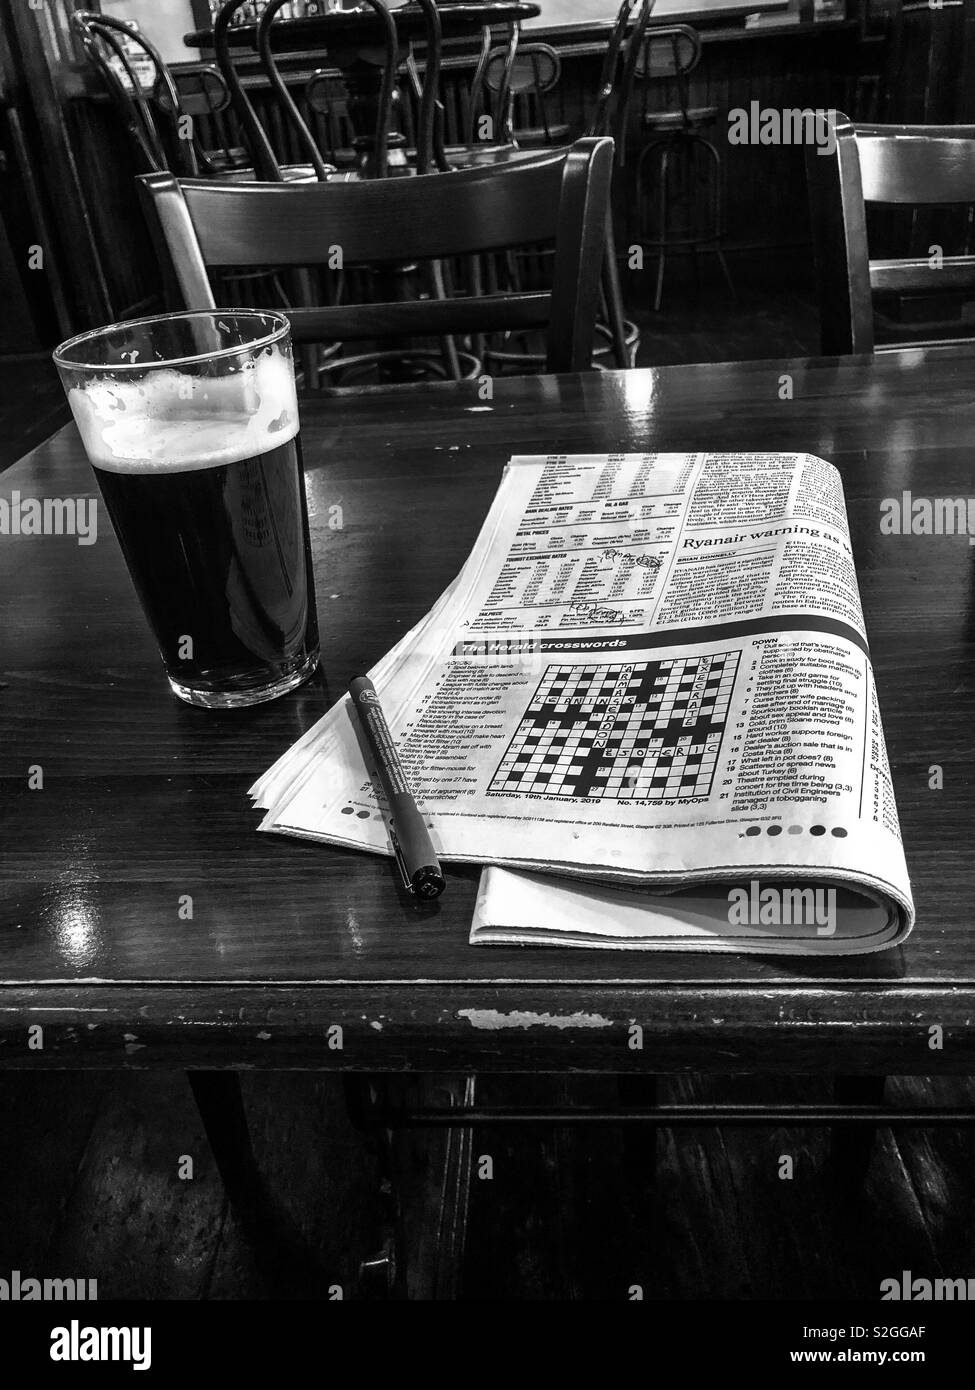 A pint of beer and the crossword. Glasgow. Scotland. UK. - Stock Image